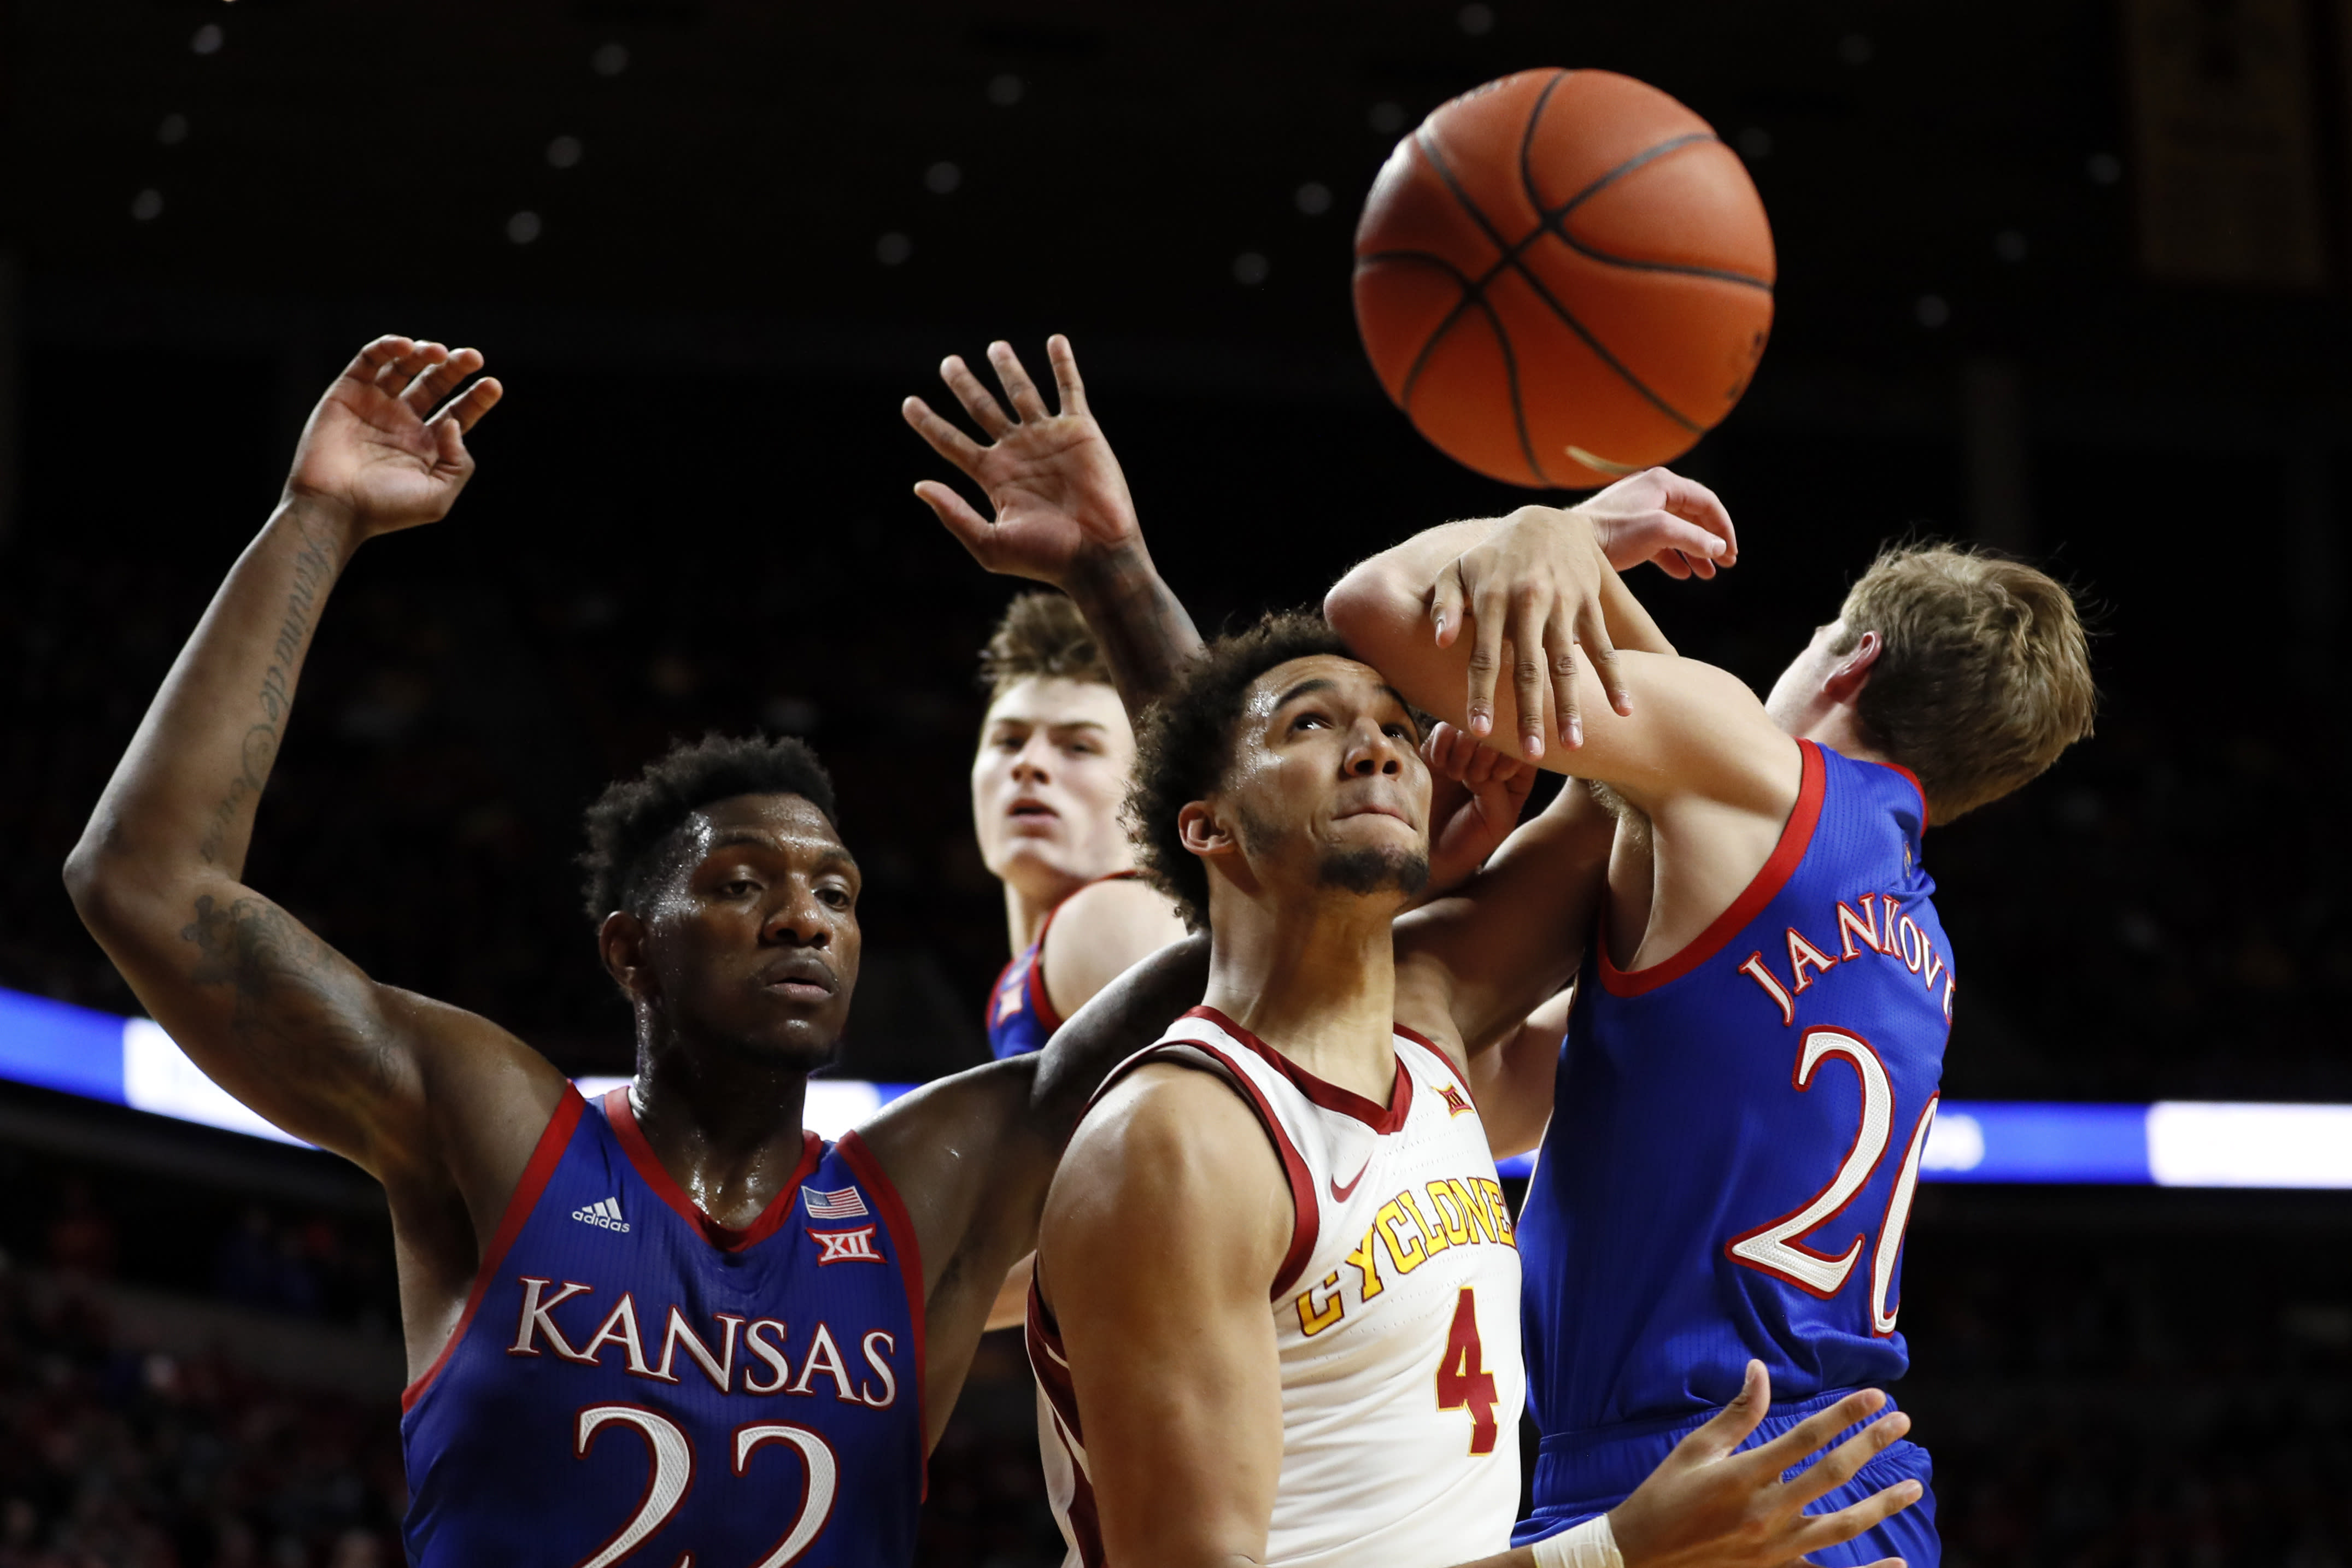 Kansas basketball vs. Iowa State: Game time, odds, stream, and more